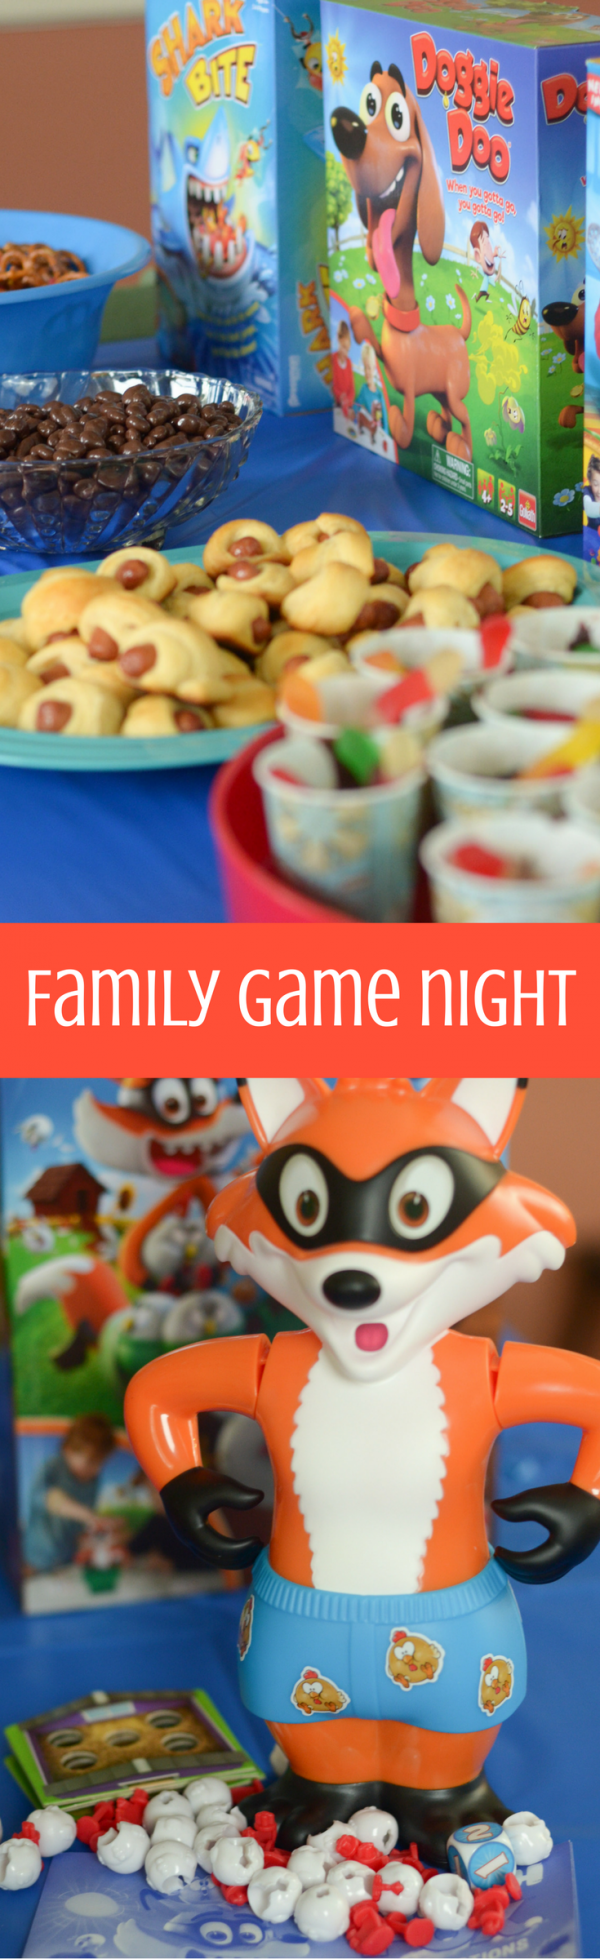 Quality Time with Friends & Family plus a Game Night #MakeitGameDayEveryday #ad